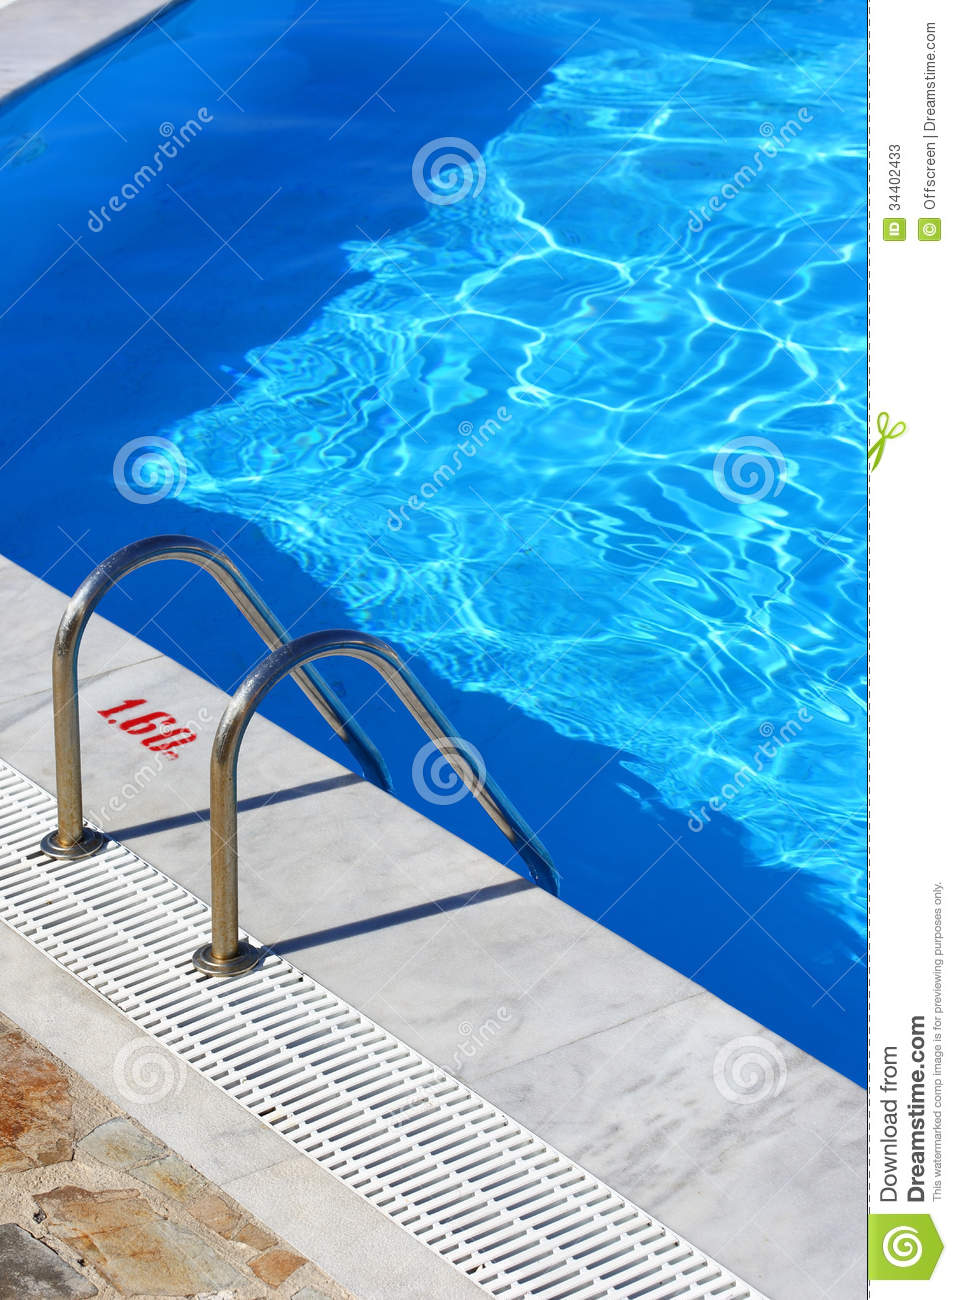 Swimming pool stock photos image 34402433 - Waterford crystal swimming pool times ...